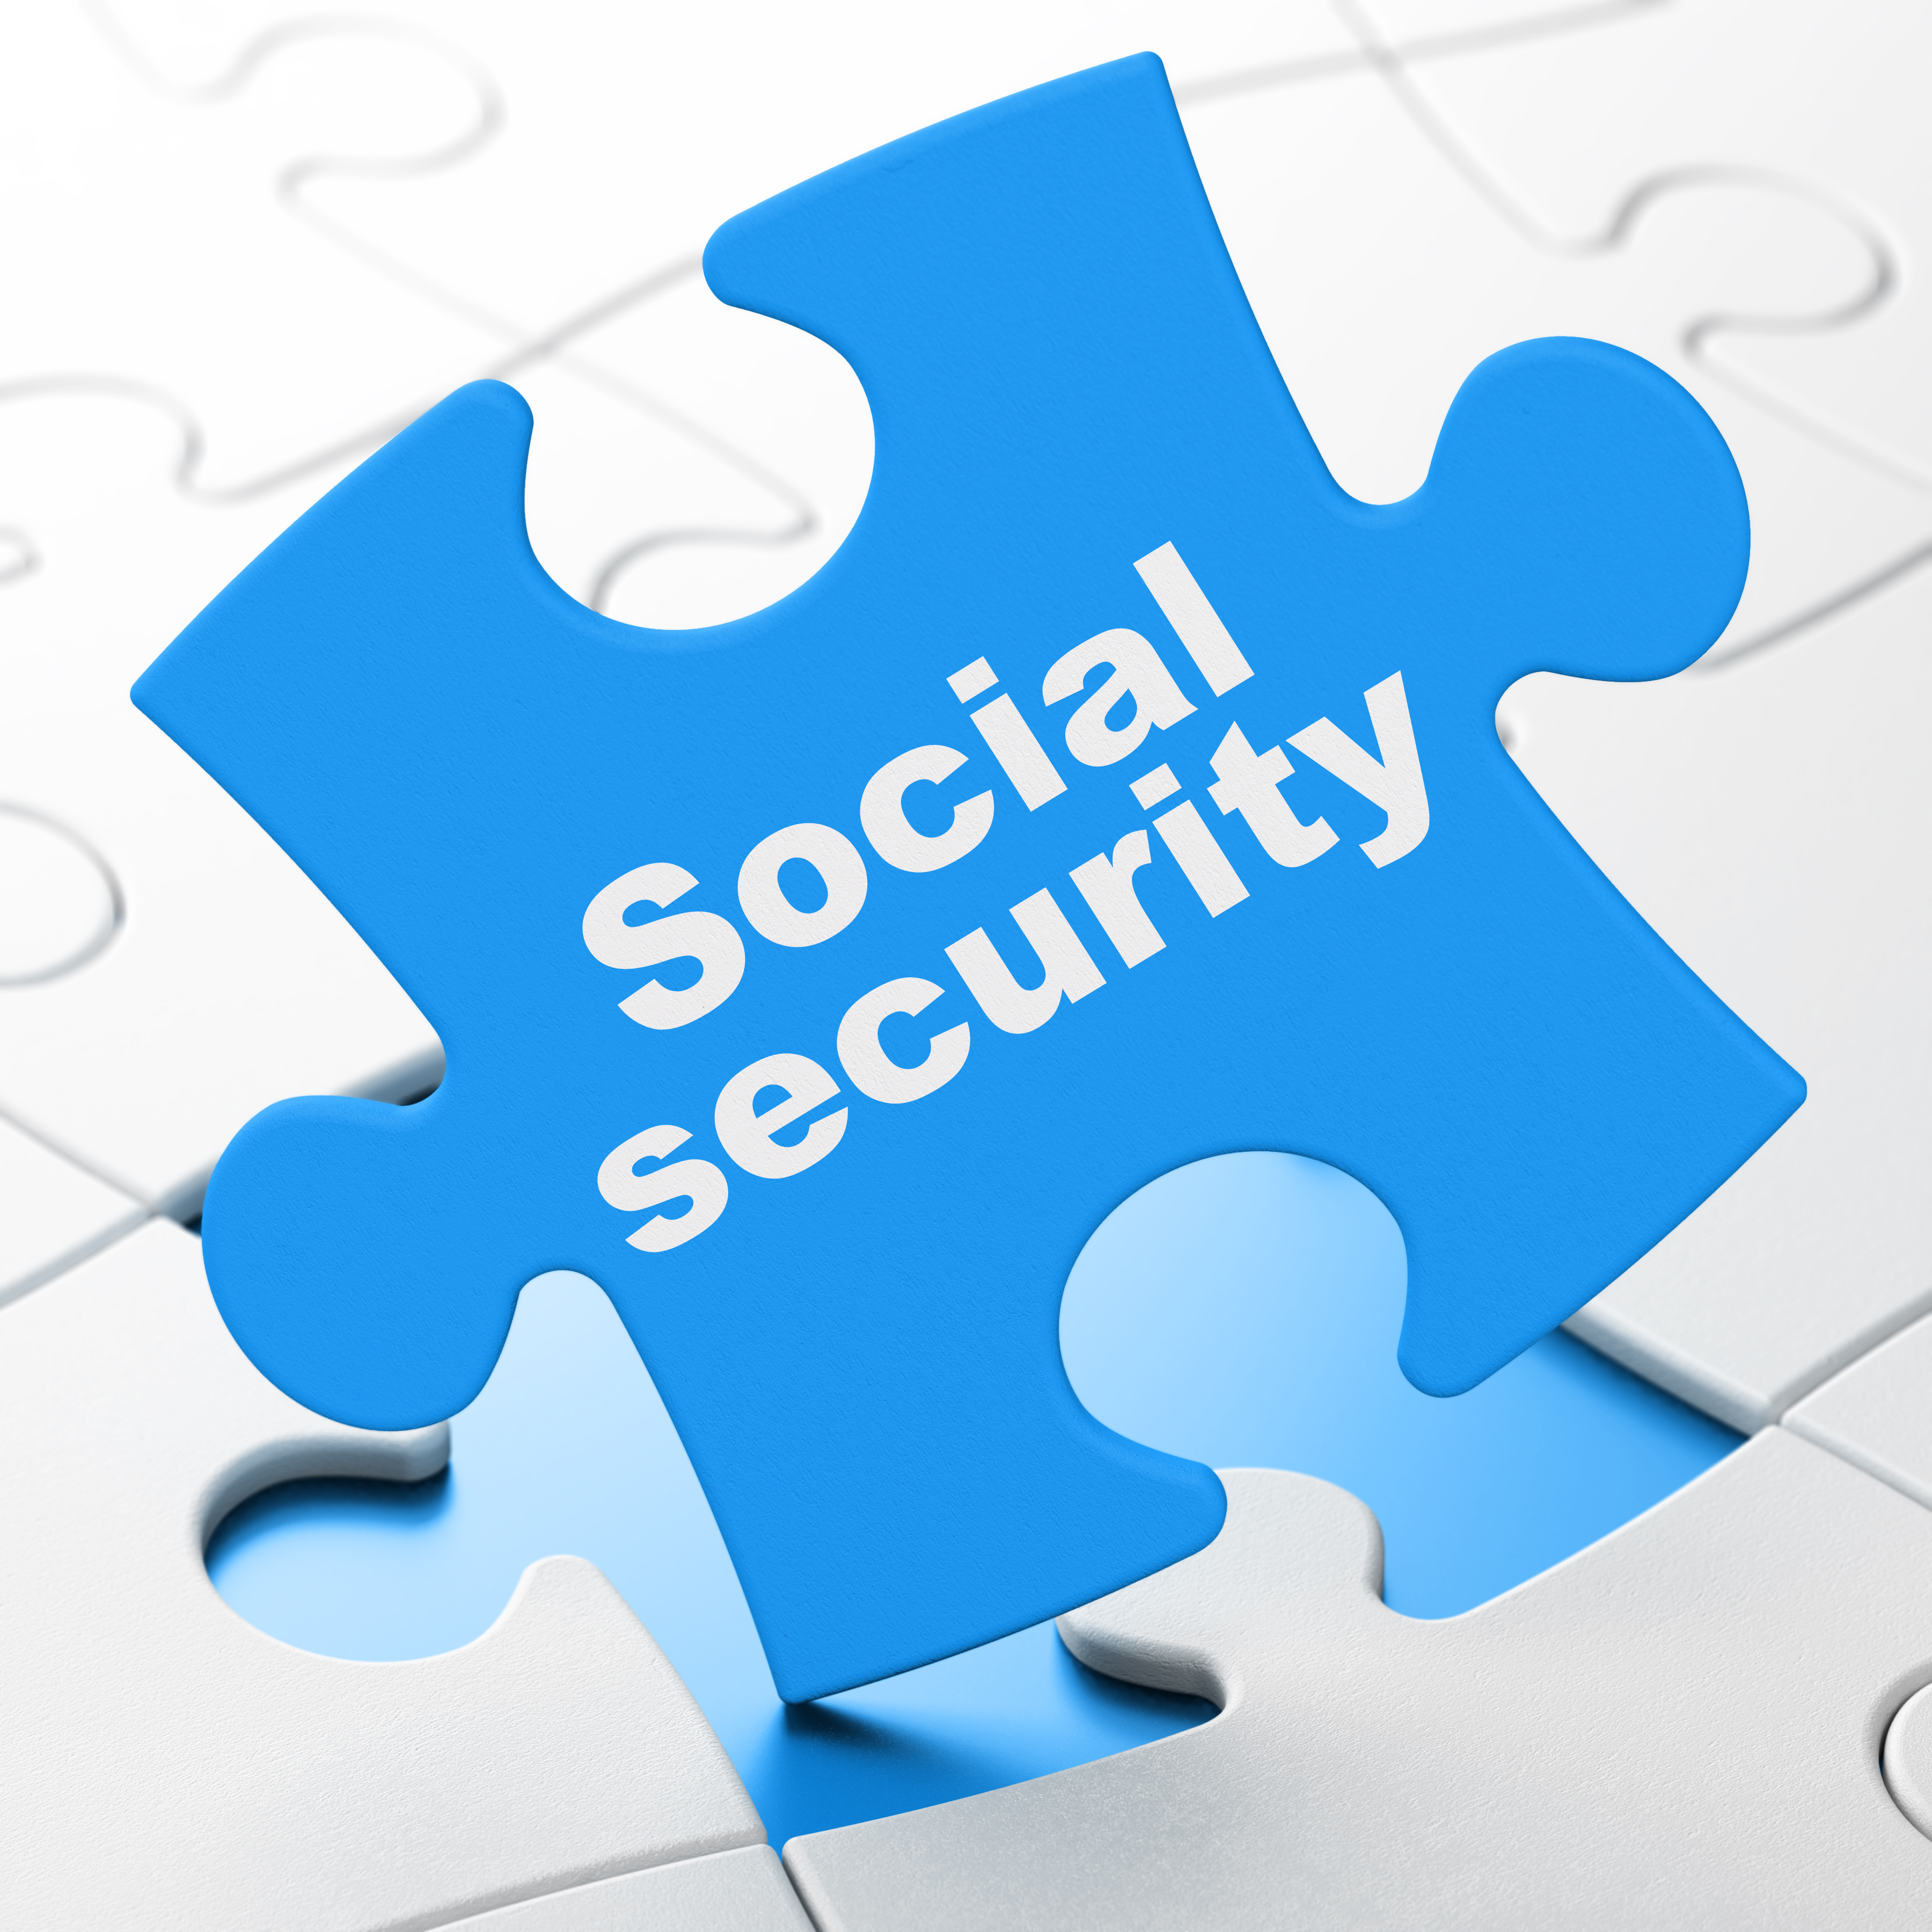 Security Social What 2017